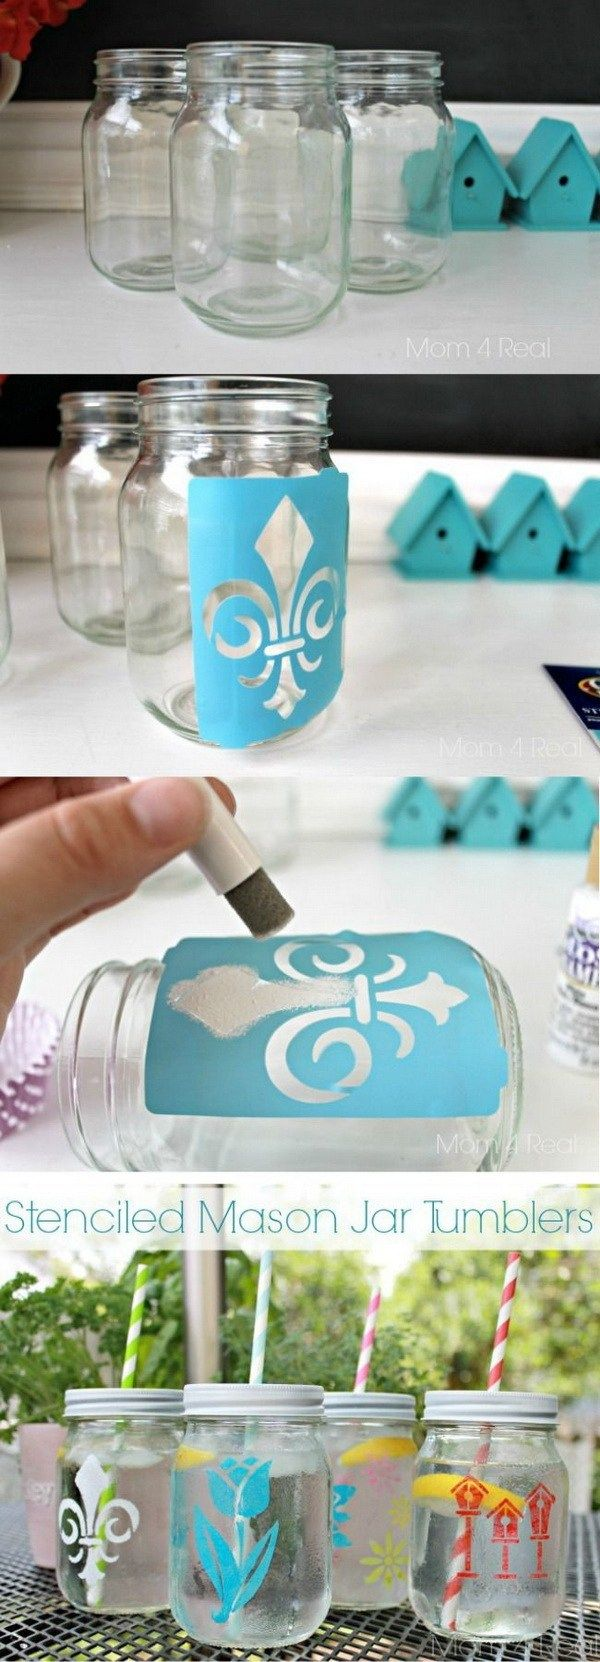 Stenciled Mason Jar Tumblers: These stenciled mason jar tumblers are super cute and also easy to make with your kids. They also make great hostess gifts.